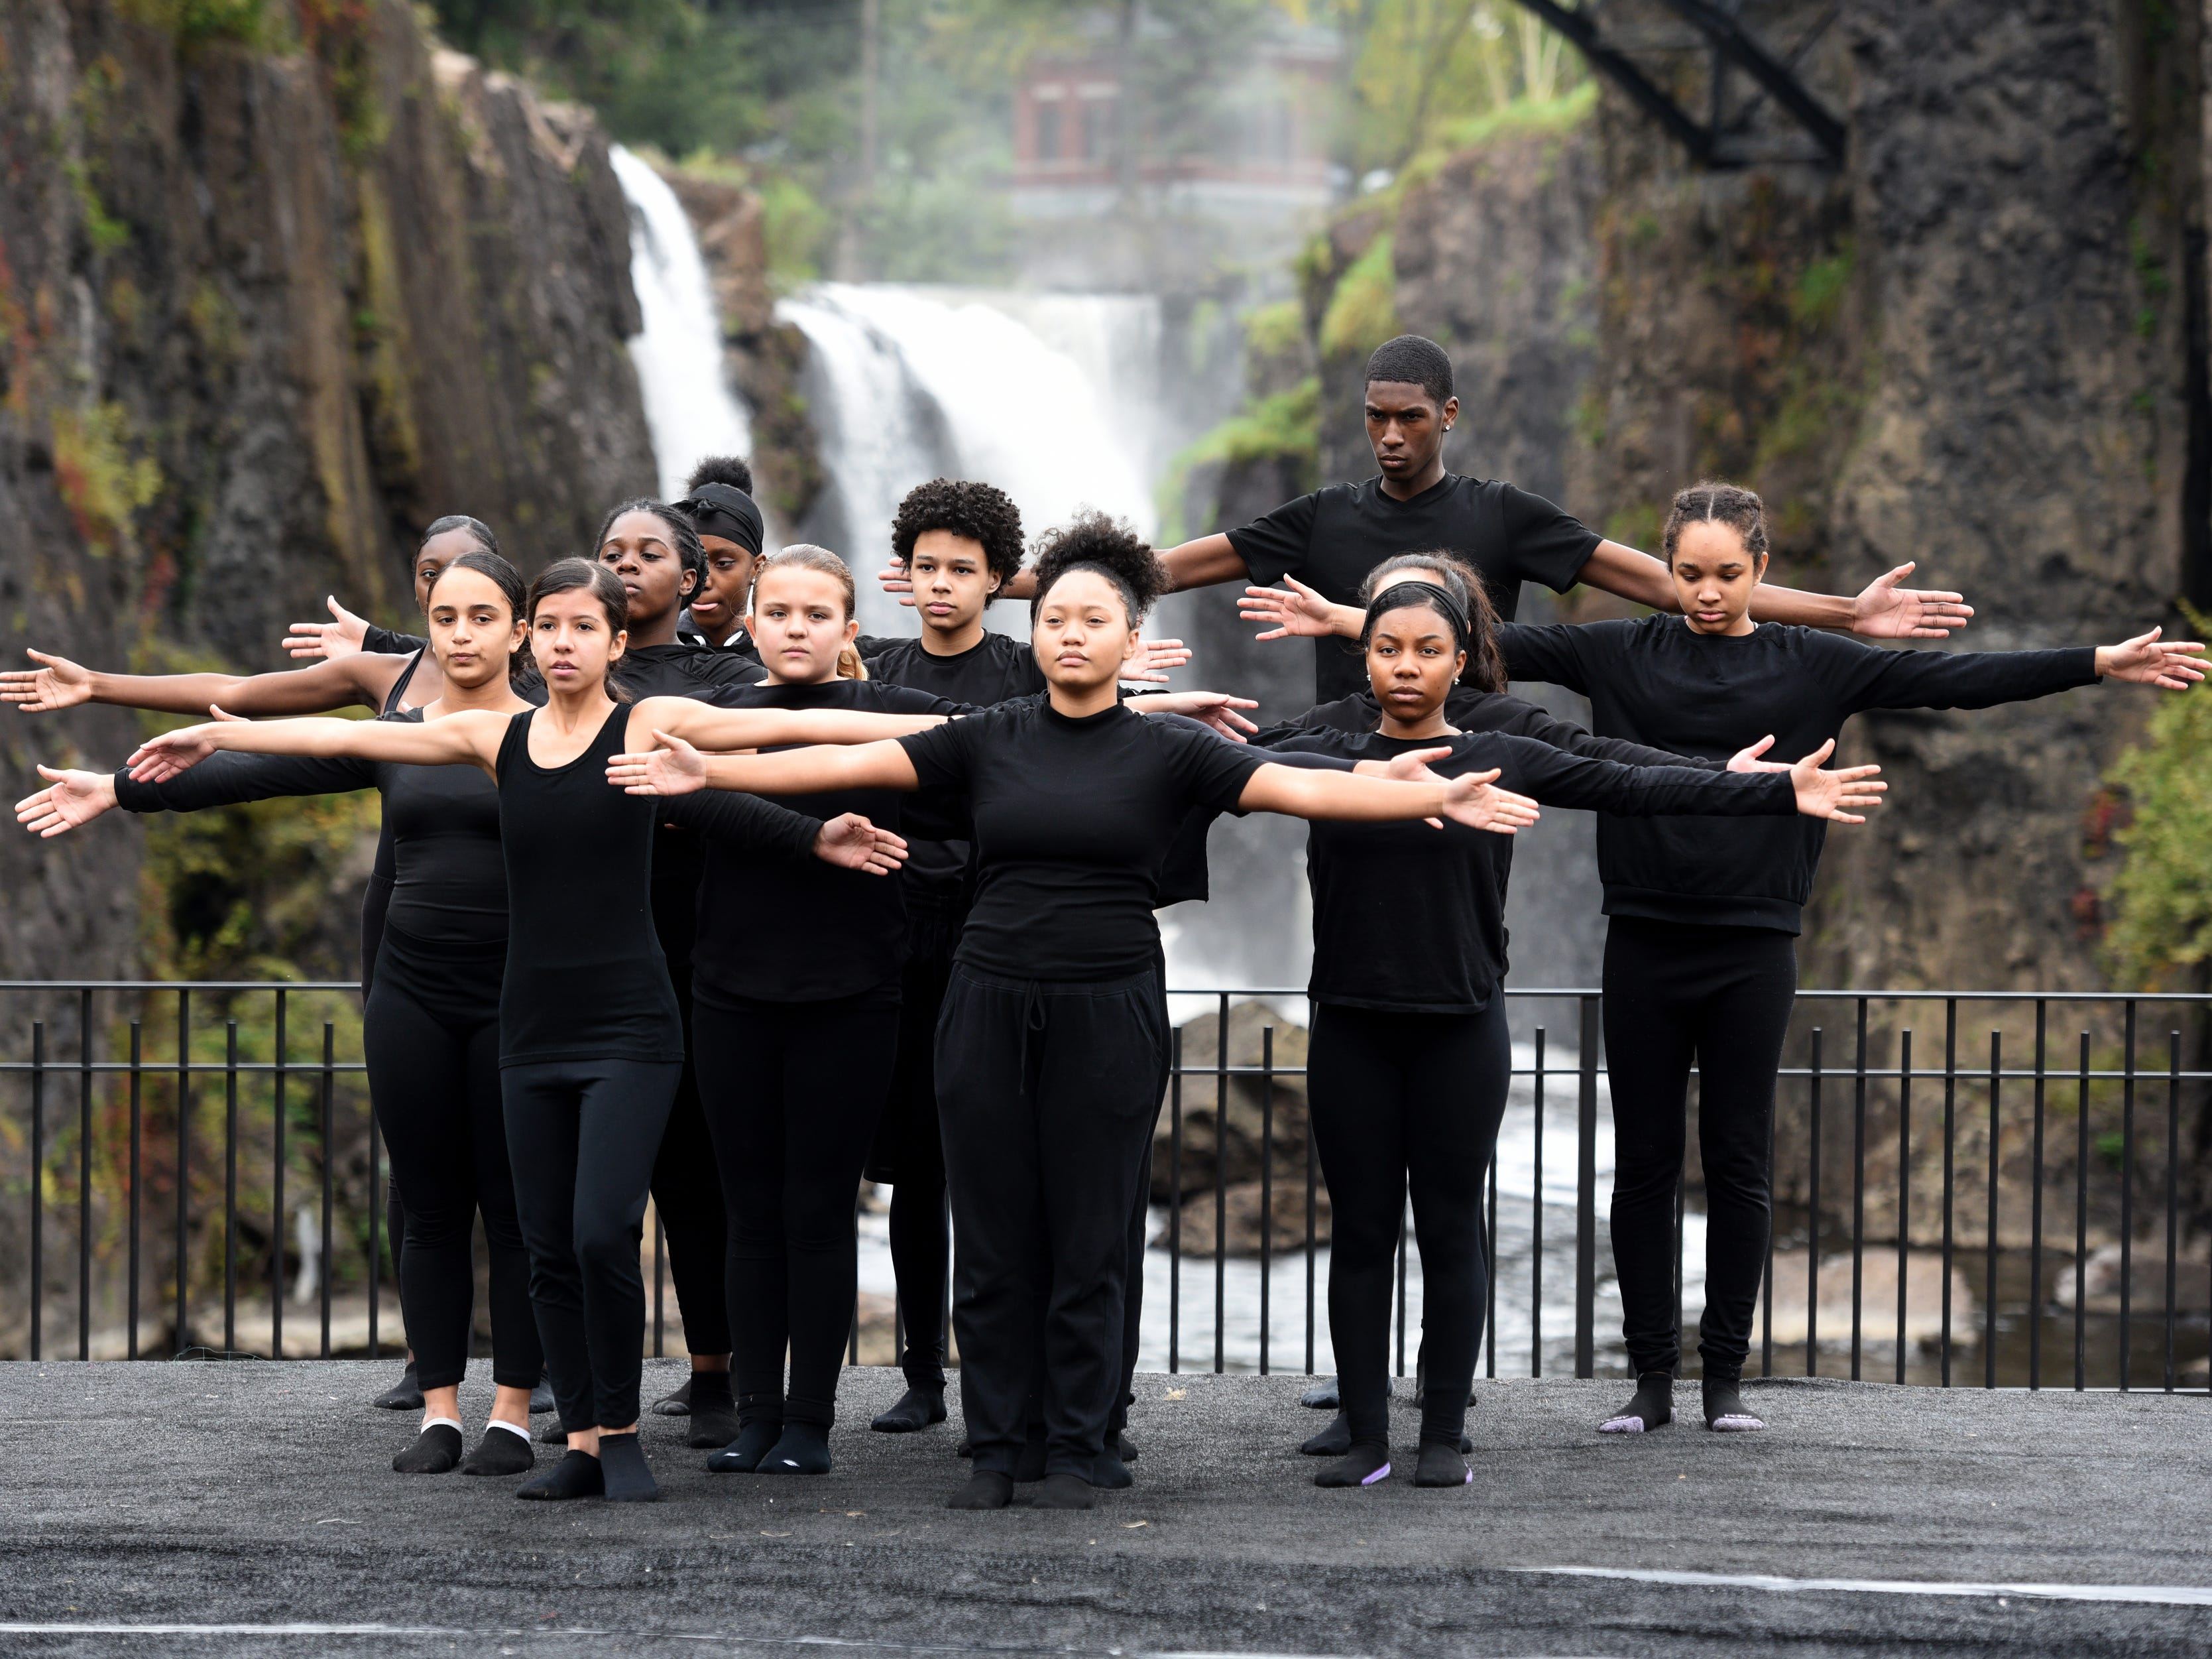 The 2018 Art in the Park Showcase was held in Overlook Park, located at the Paterson Great Falls National Historical Park on Sunday, October 14, 2018. The Inner City Ensemble, a dance and theater program from Paterson, performs in the showcase.